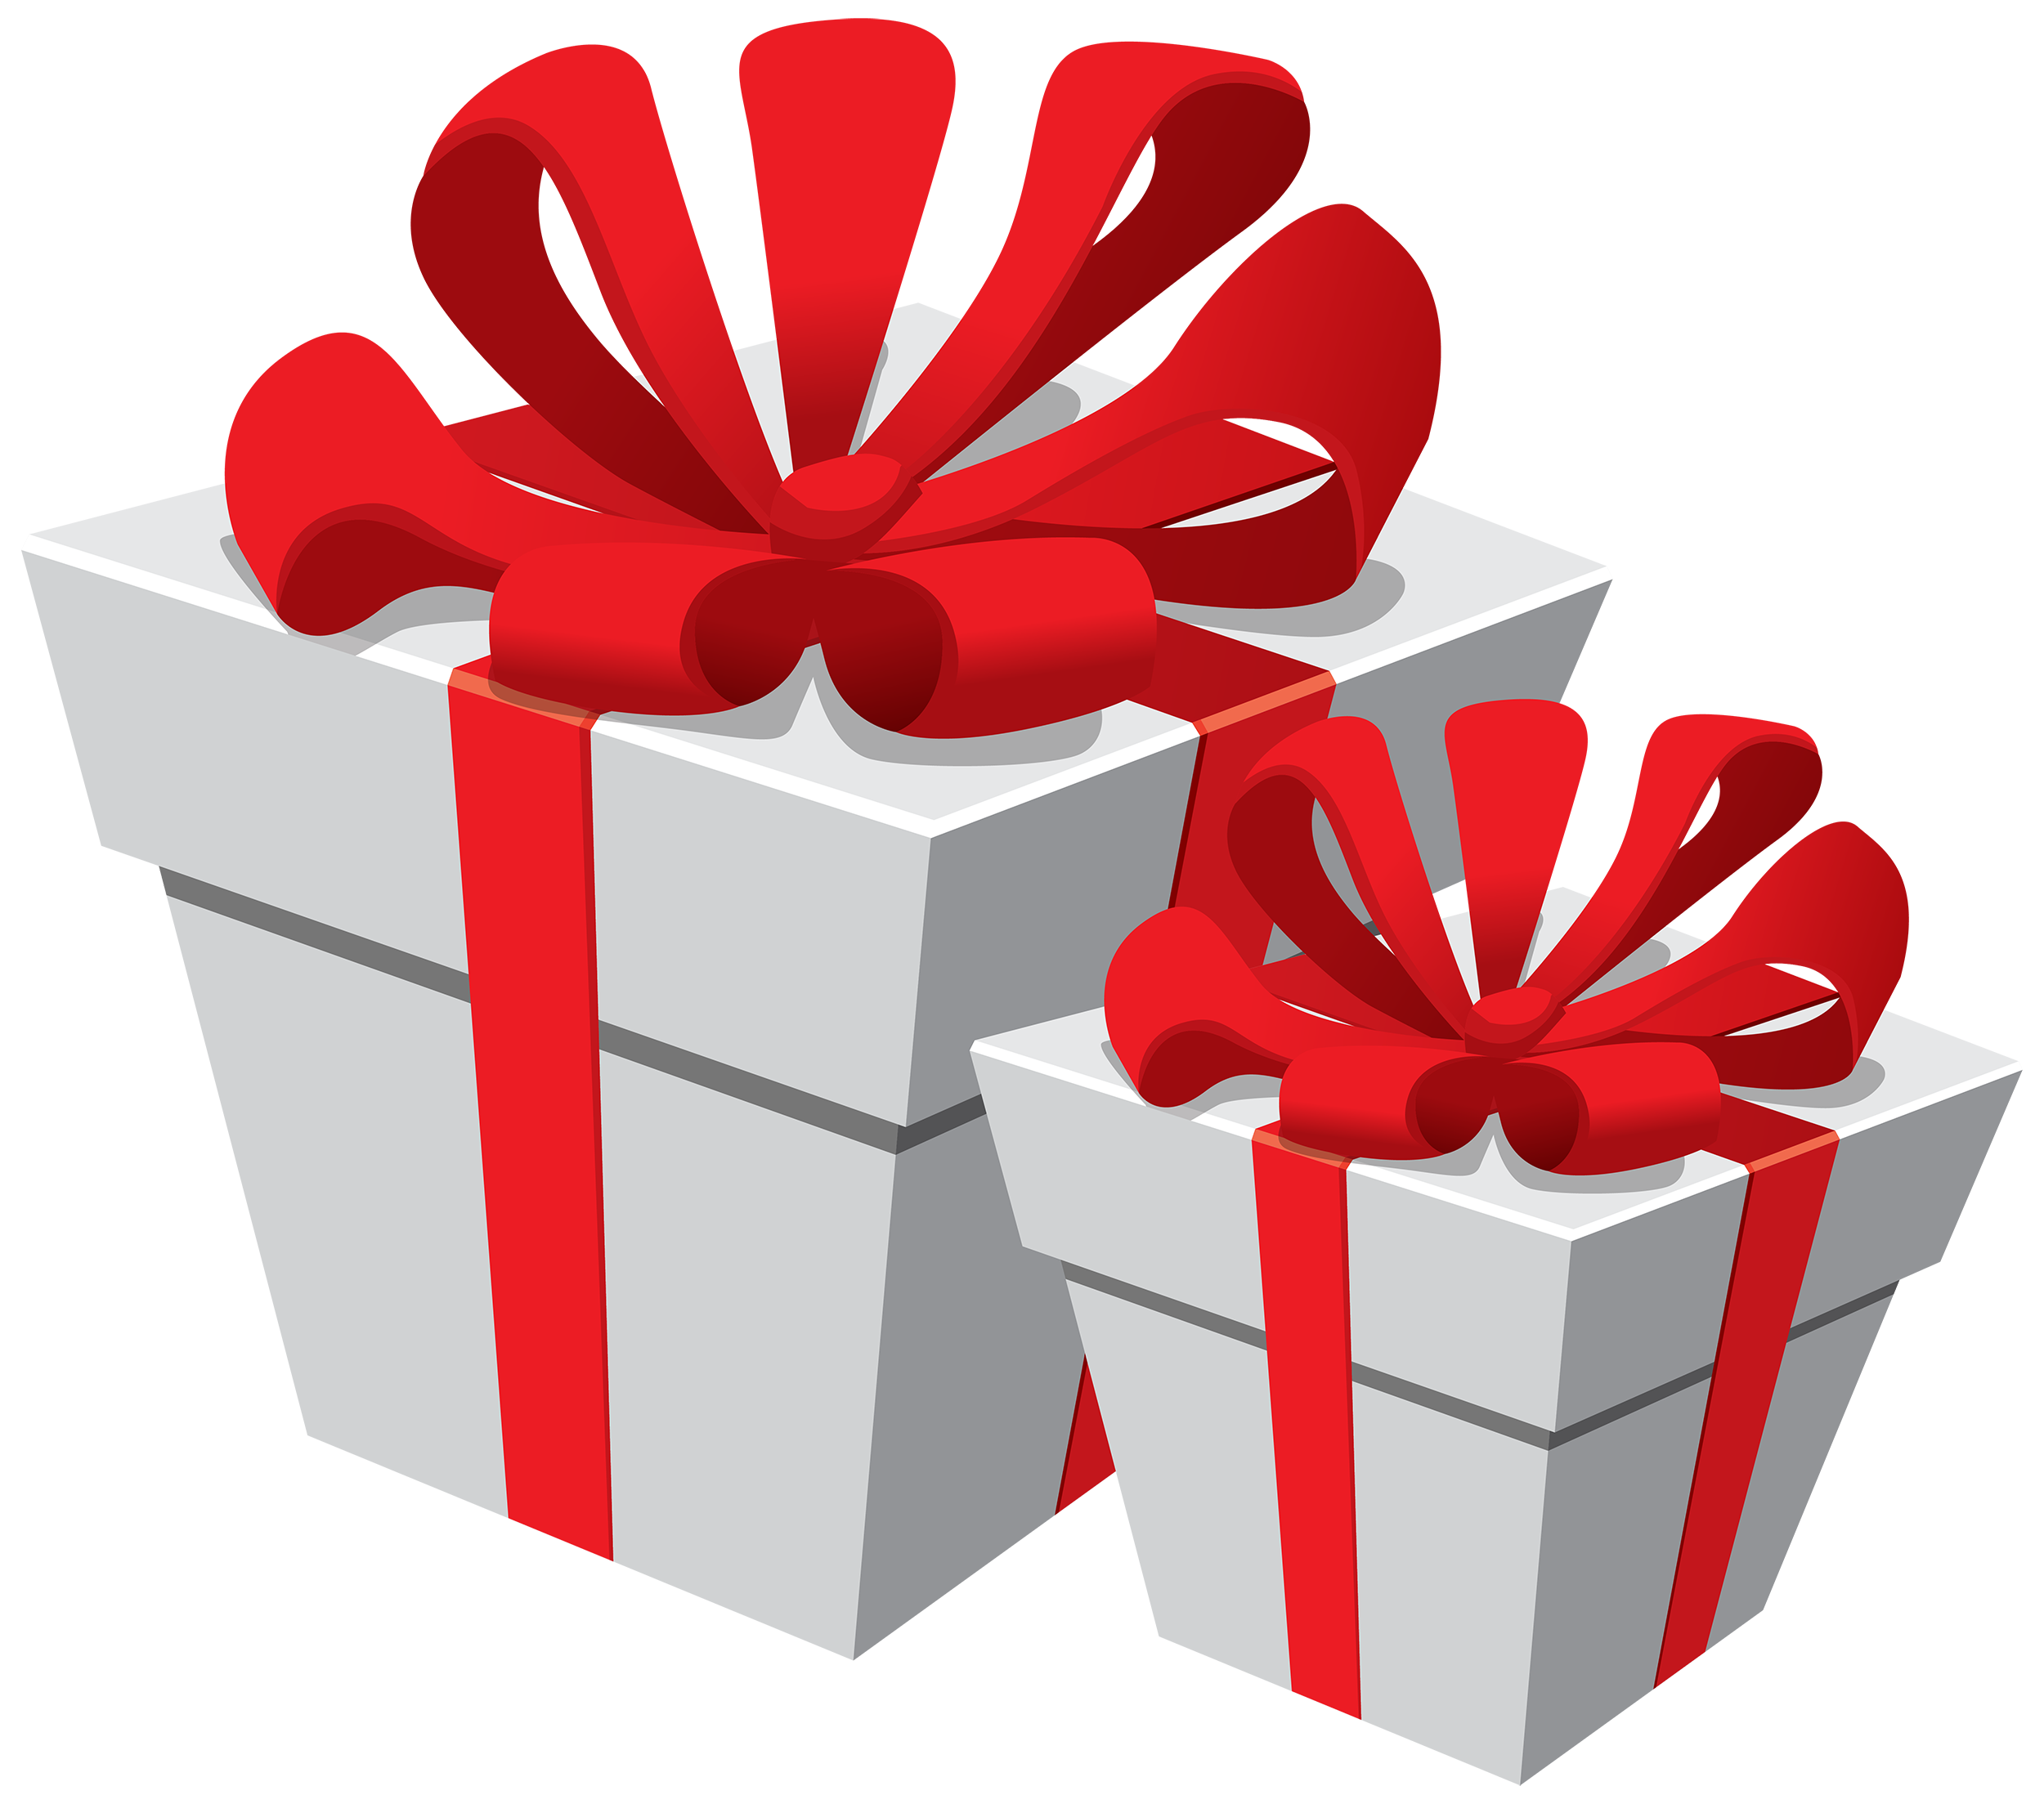 Gift clipart special gift. White boxes with red